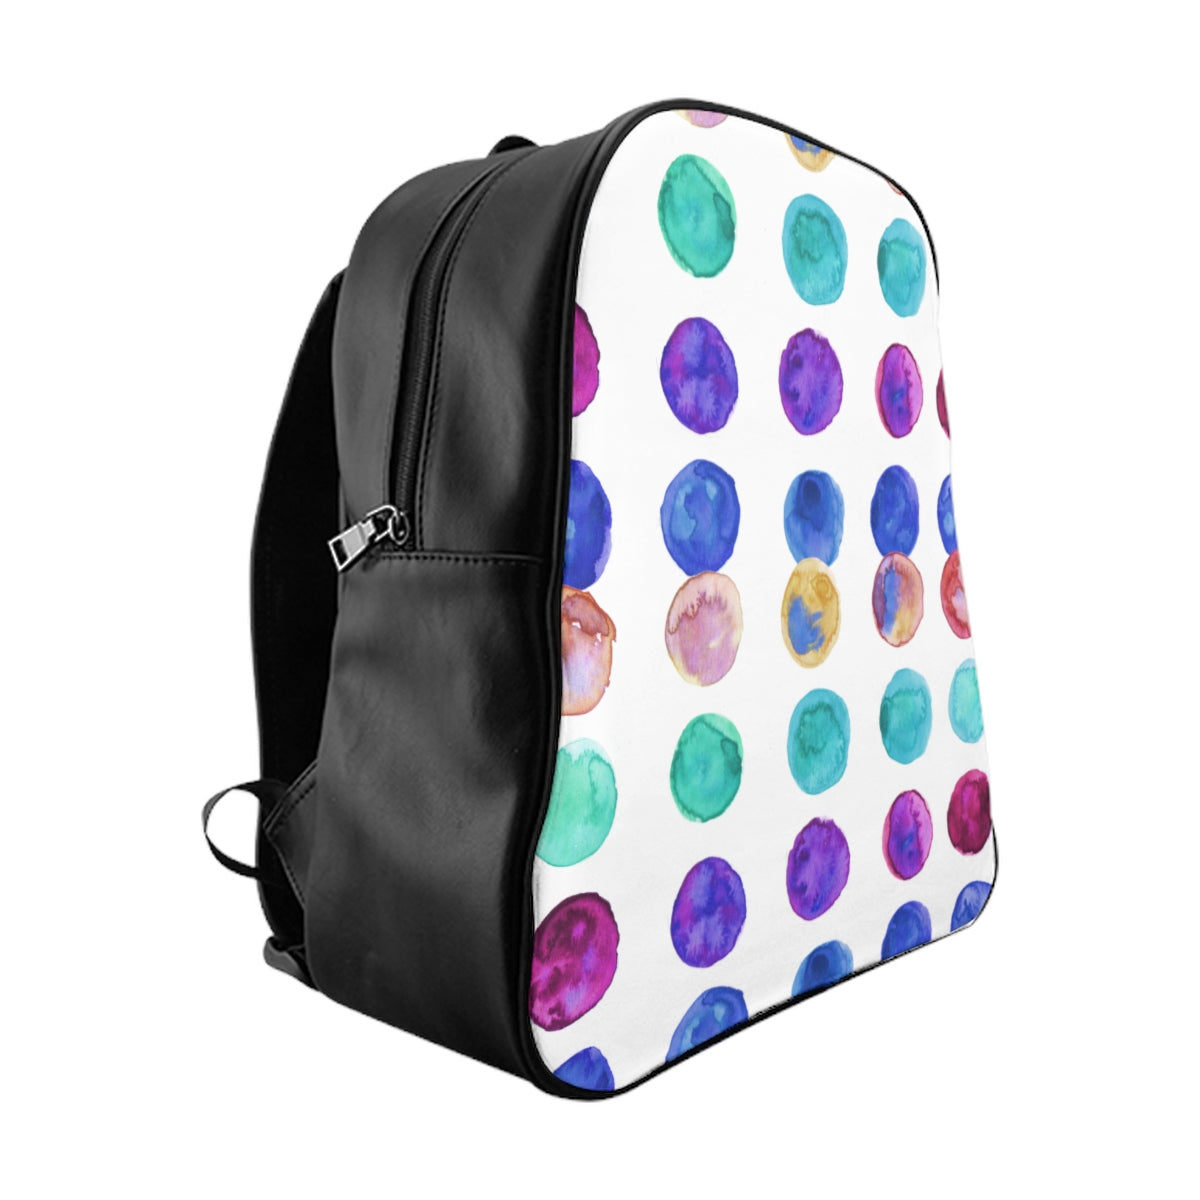 Cute Colorful Watercolor Blue Purple Green Polka Dots Print Designer School Backpack-Backpack-Large-Heidi Kimura Art LLC